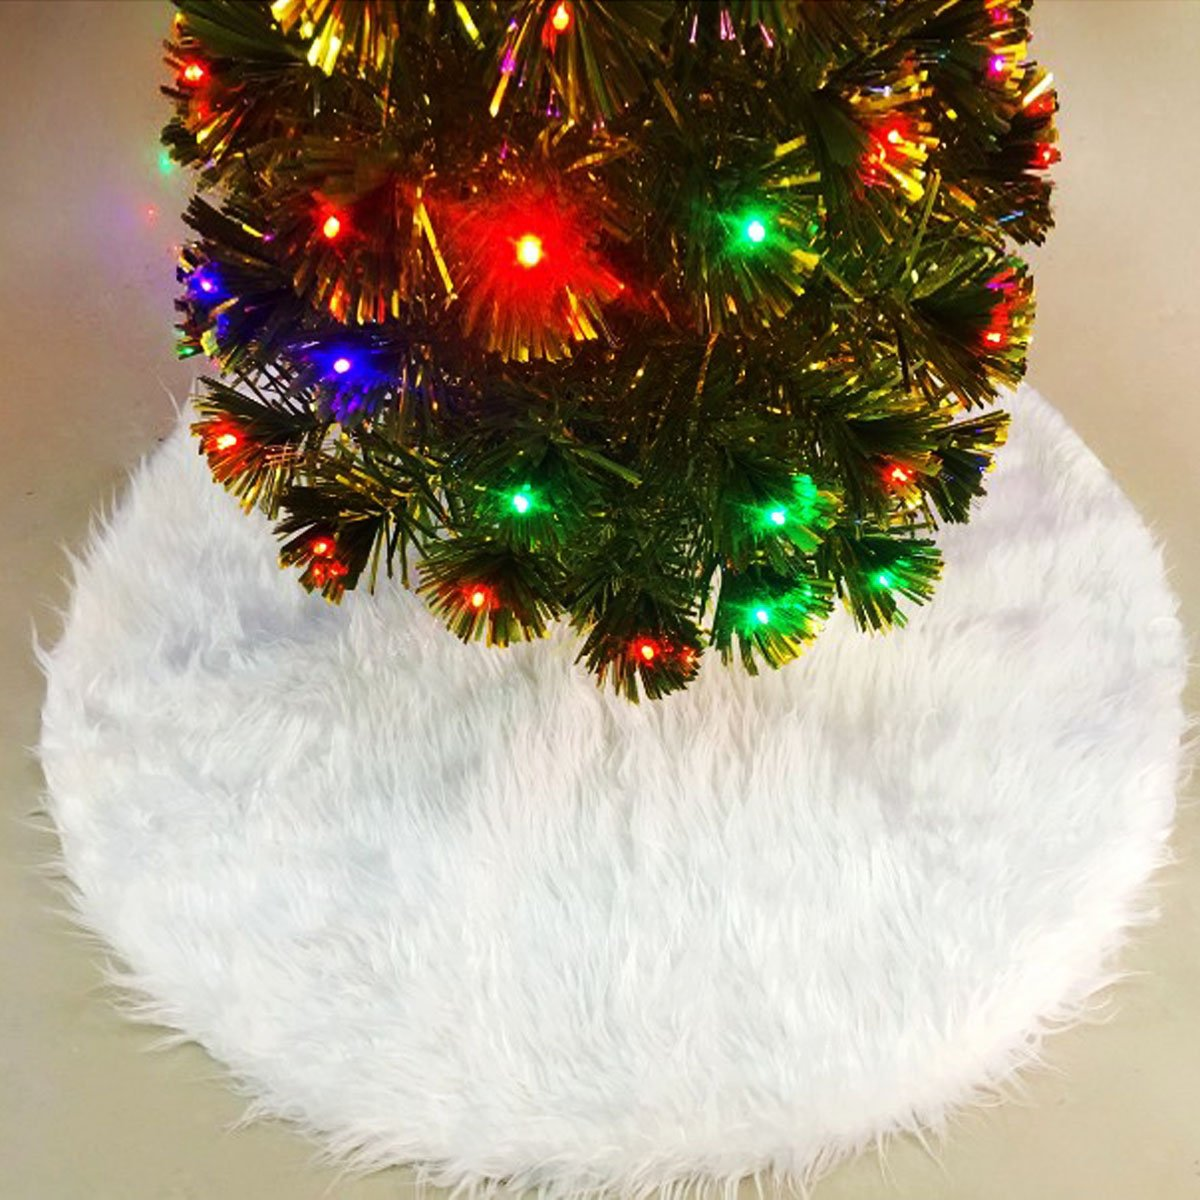 ThinkTop Christmas Tree Skirt Faux Fur Tree Skirt Pure White Plush Round DIY Home Decoration Ornaments for Xmas New Year Holiday Party (35.5'', White)